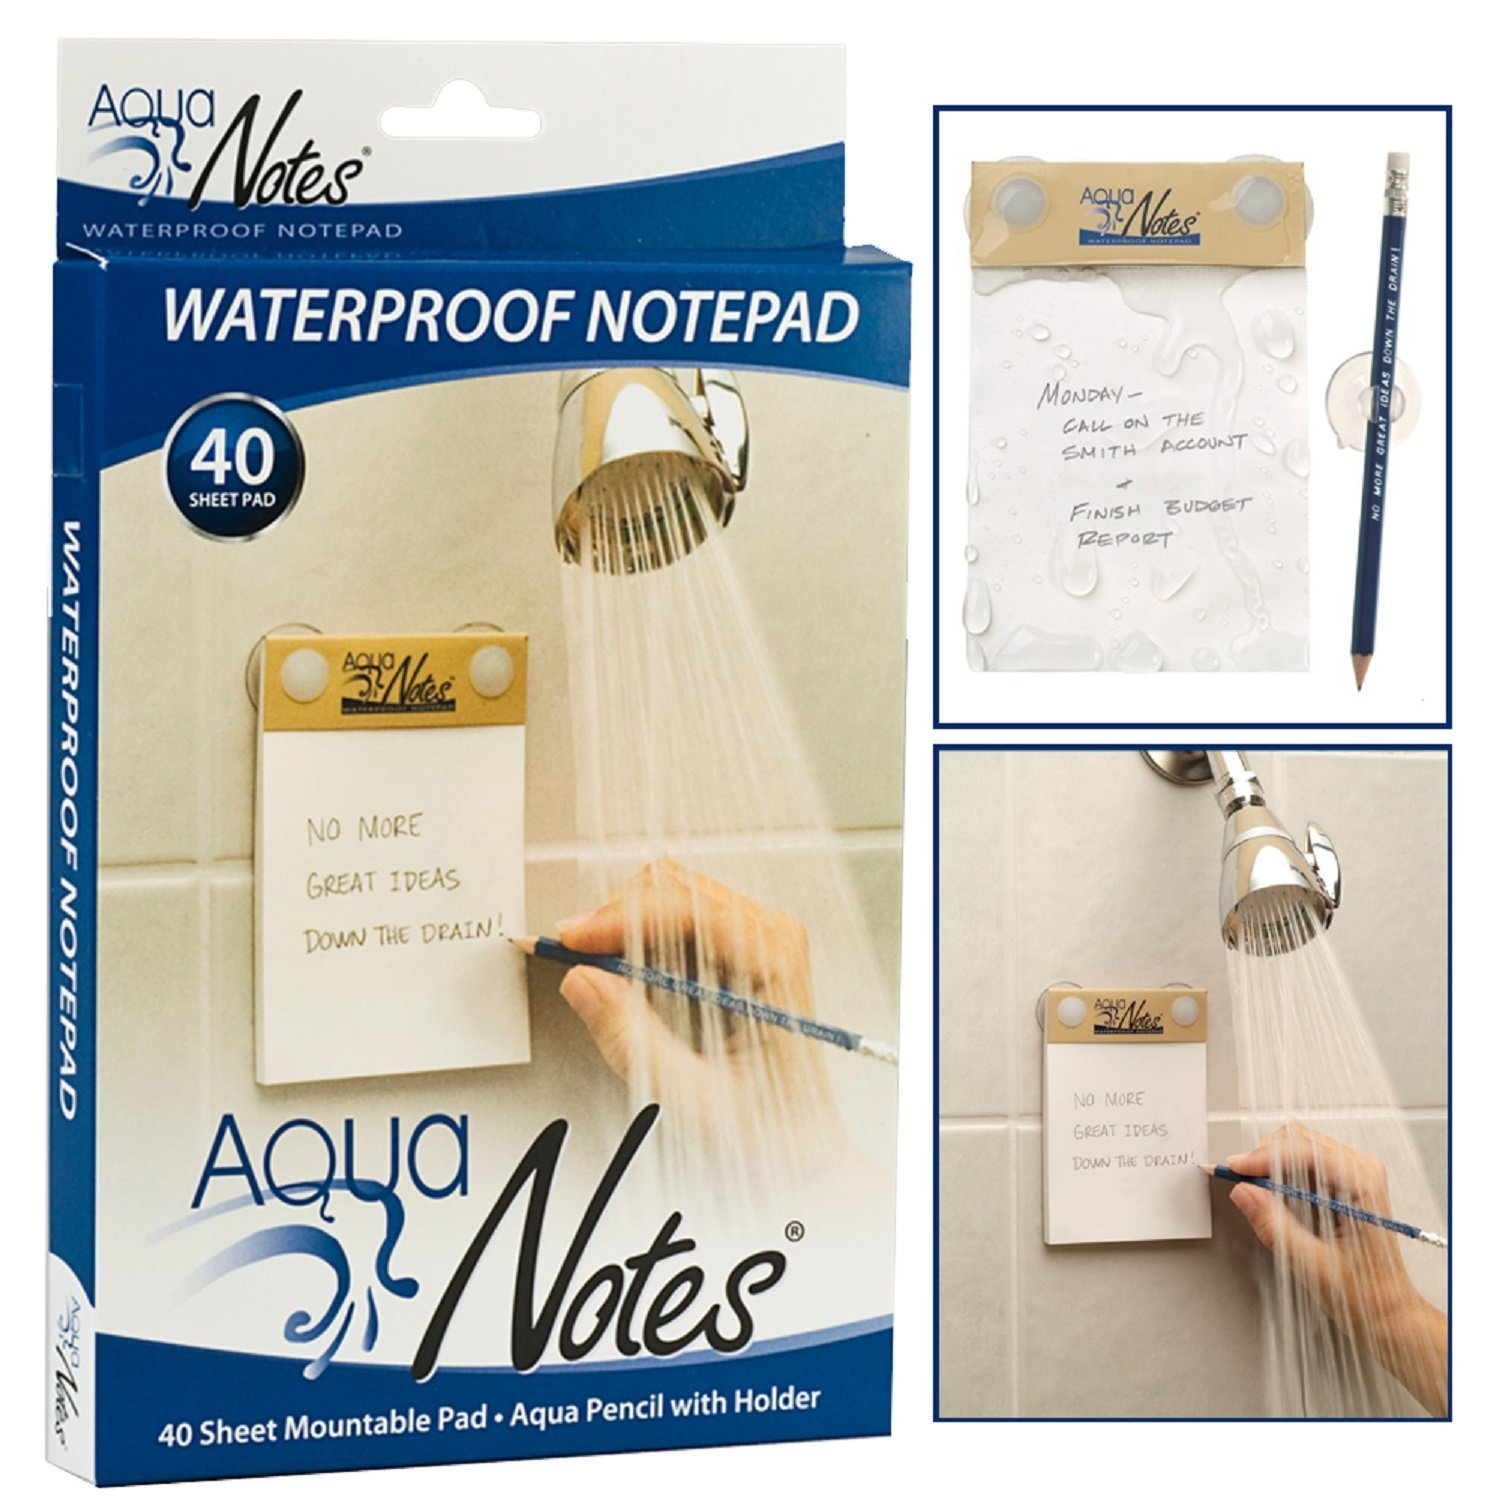 Aqua Notes Water Proof Note Pad by Aquanotes (Image #1)